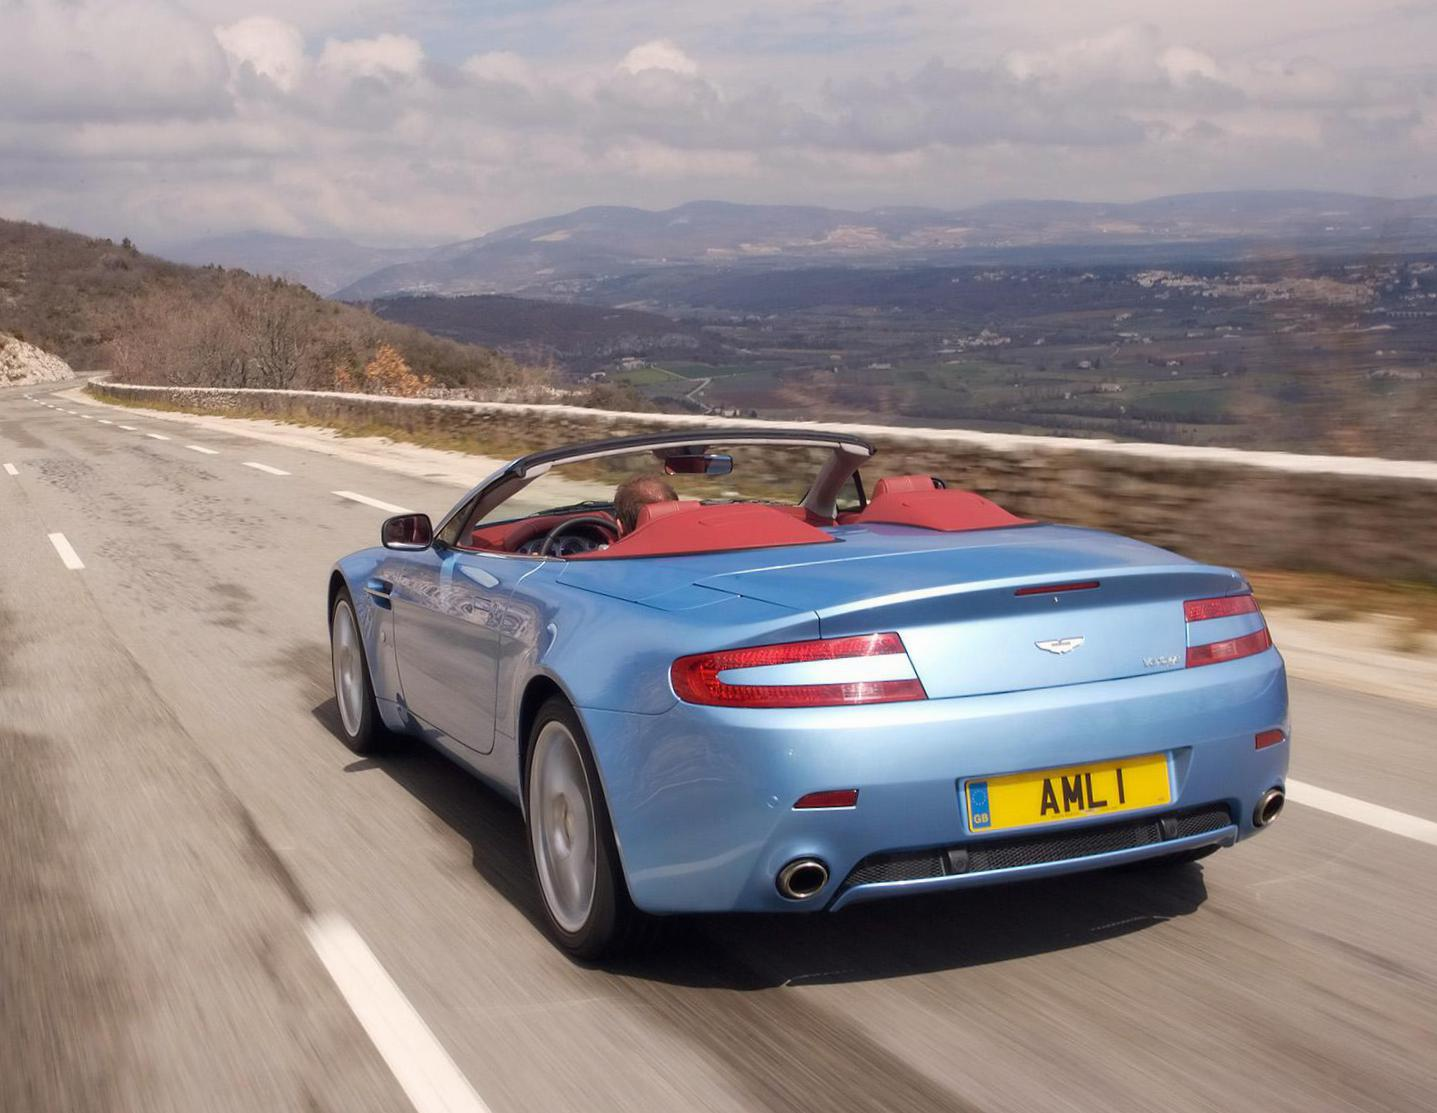 Vantage Roadster Aston Martin Specifications 2015